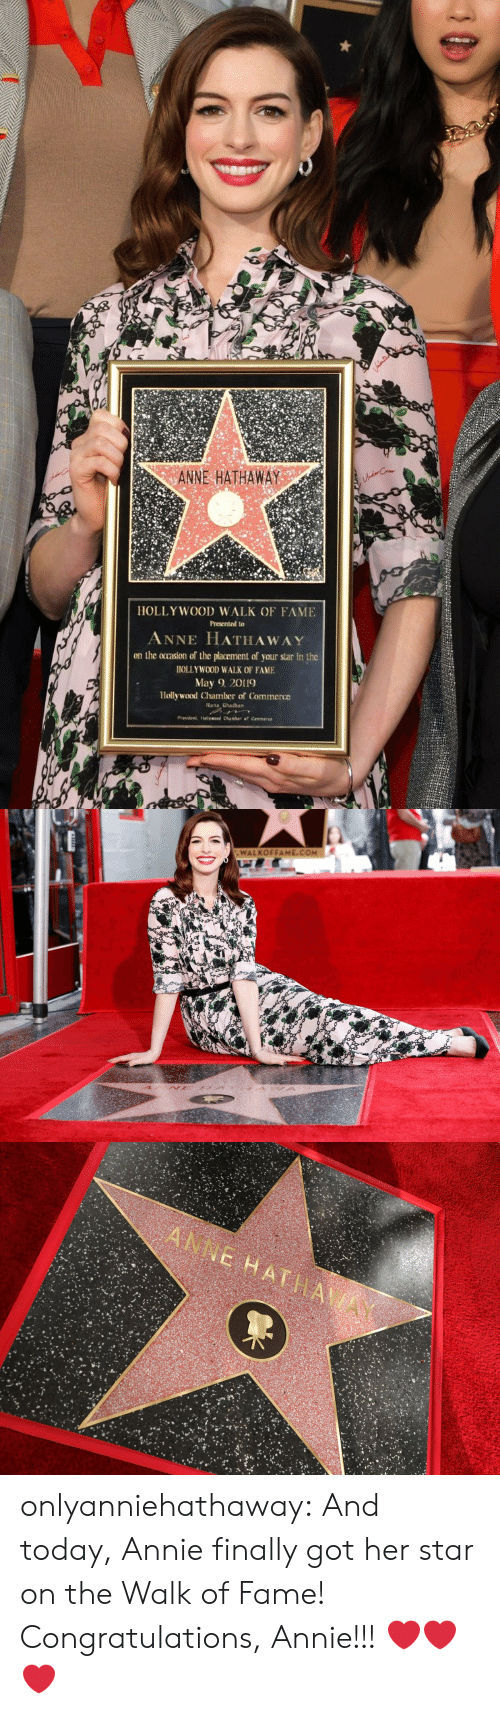 Tumblr, Anne Hathaway, and Annie: ANNE HATHAWAY  HOLLY WOOD WALK OF FAME  Presented to  ANNE HATHAWAY  on the ocrasion of the placement of your star in the  HOLLYWOOD WALK OF FAME  May 2019  Hollywood Chamber of Commerce  ana Ghadban   WALKOFFAME.COM onlyanniehathaway:  And today, Annie finally got her star on the Walk of Fame! Congratulations, Annie!!!  ❤️❤️❤️